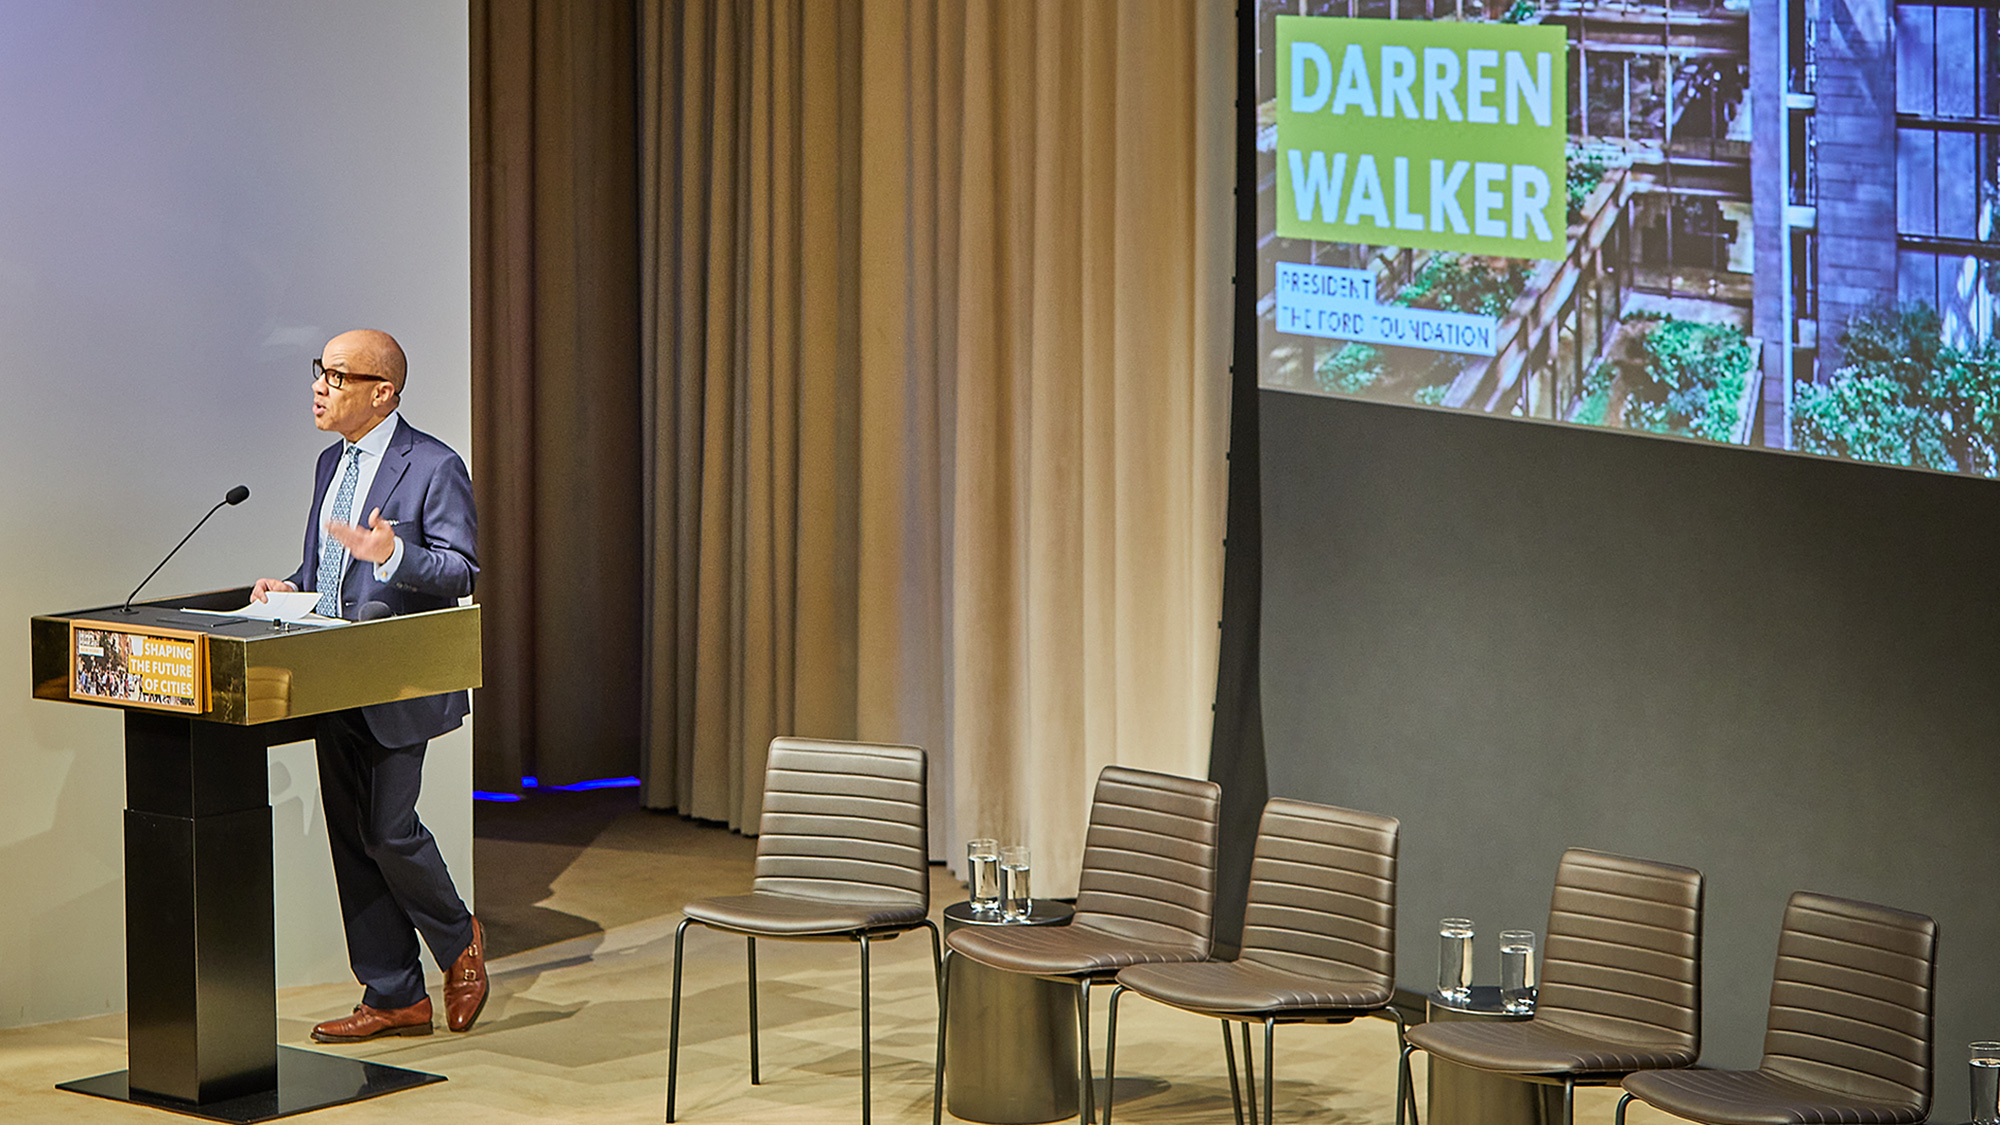 Ford Foundation President Darren Walker delivers welcome remarks